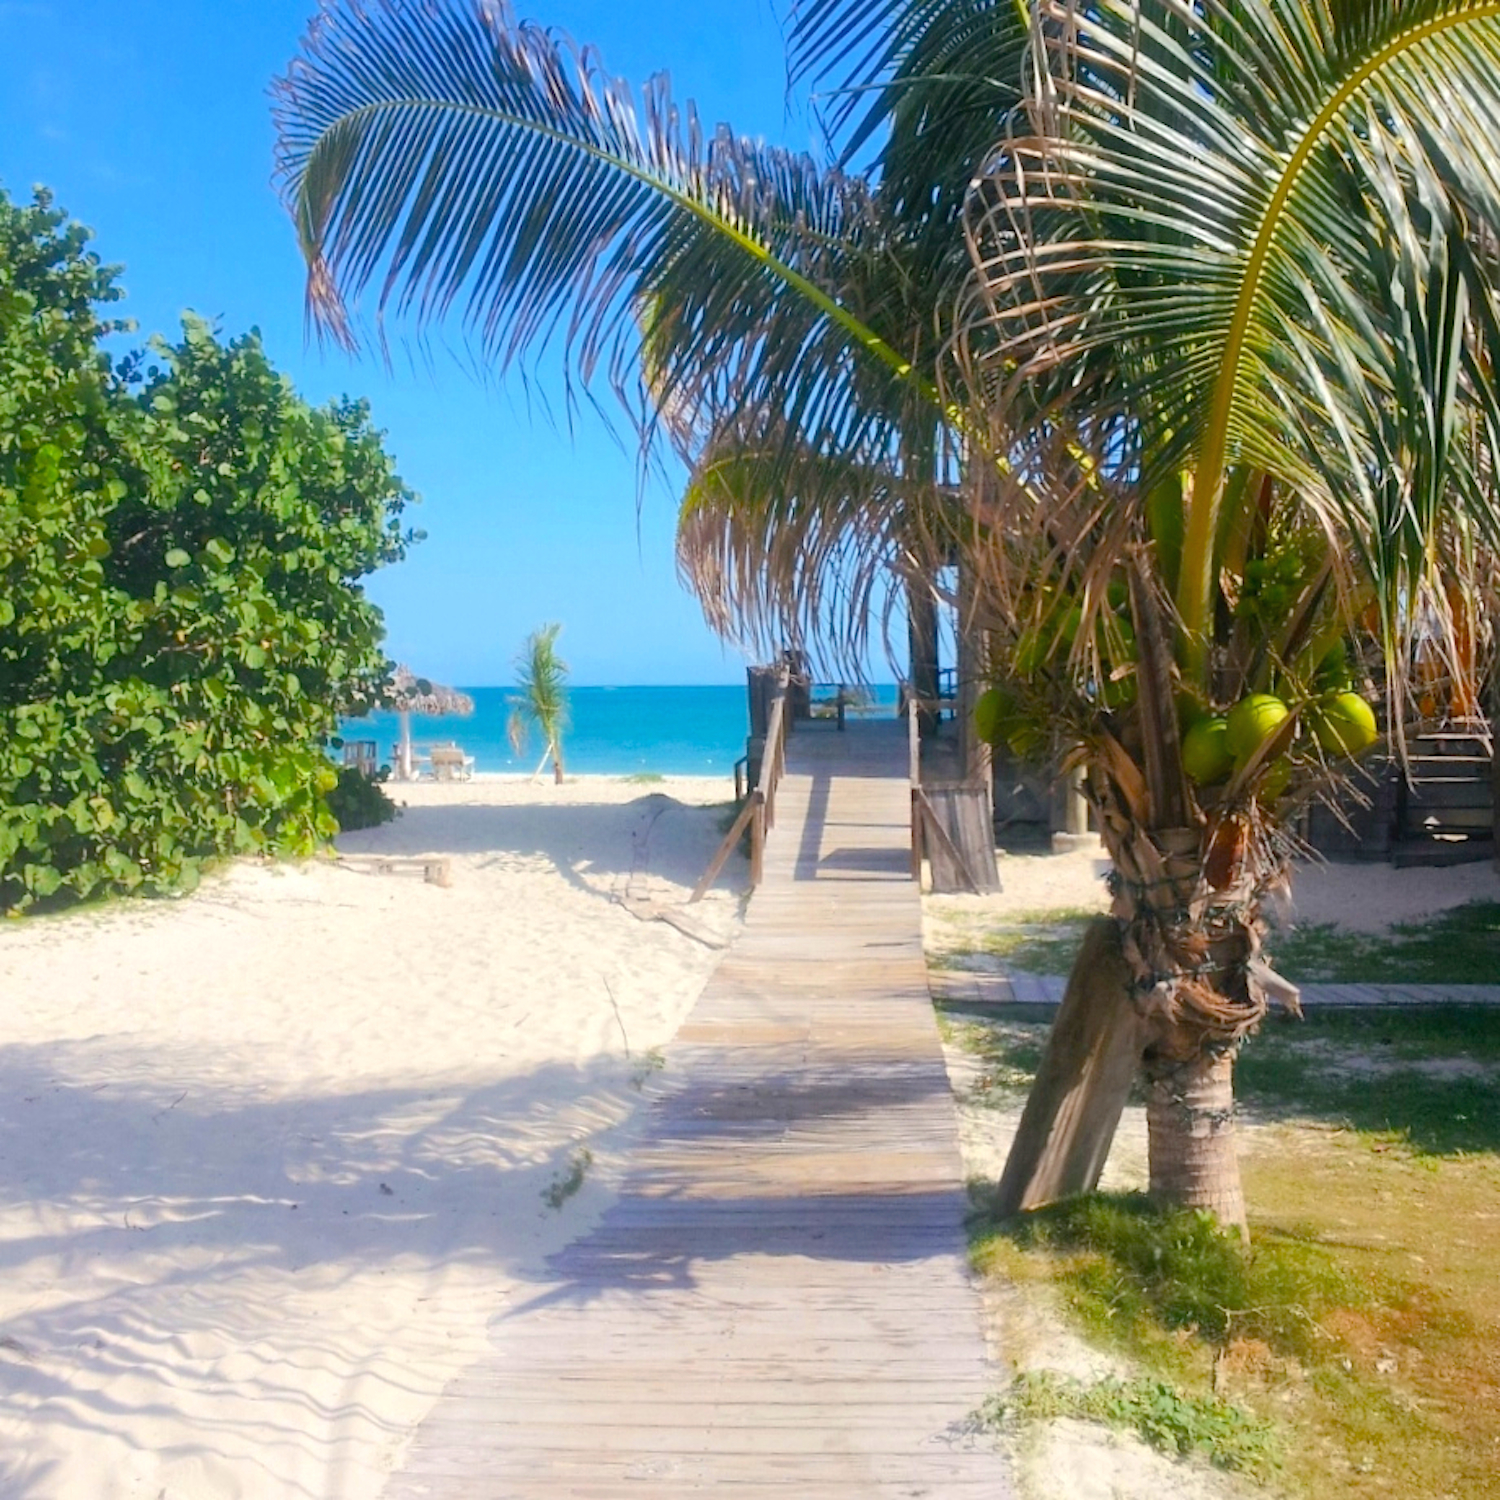 Beach Island: Escape For Lunch To Jamaica's Gorgeous Boardwalk Beach